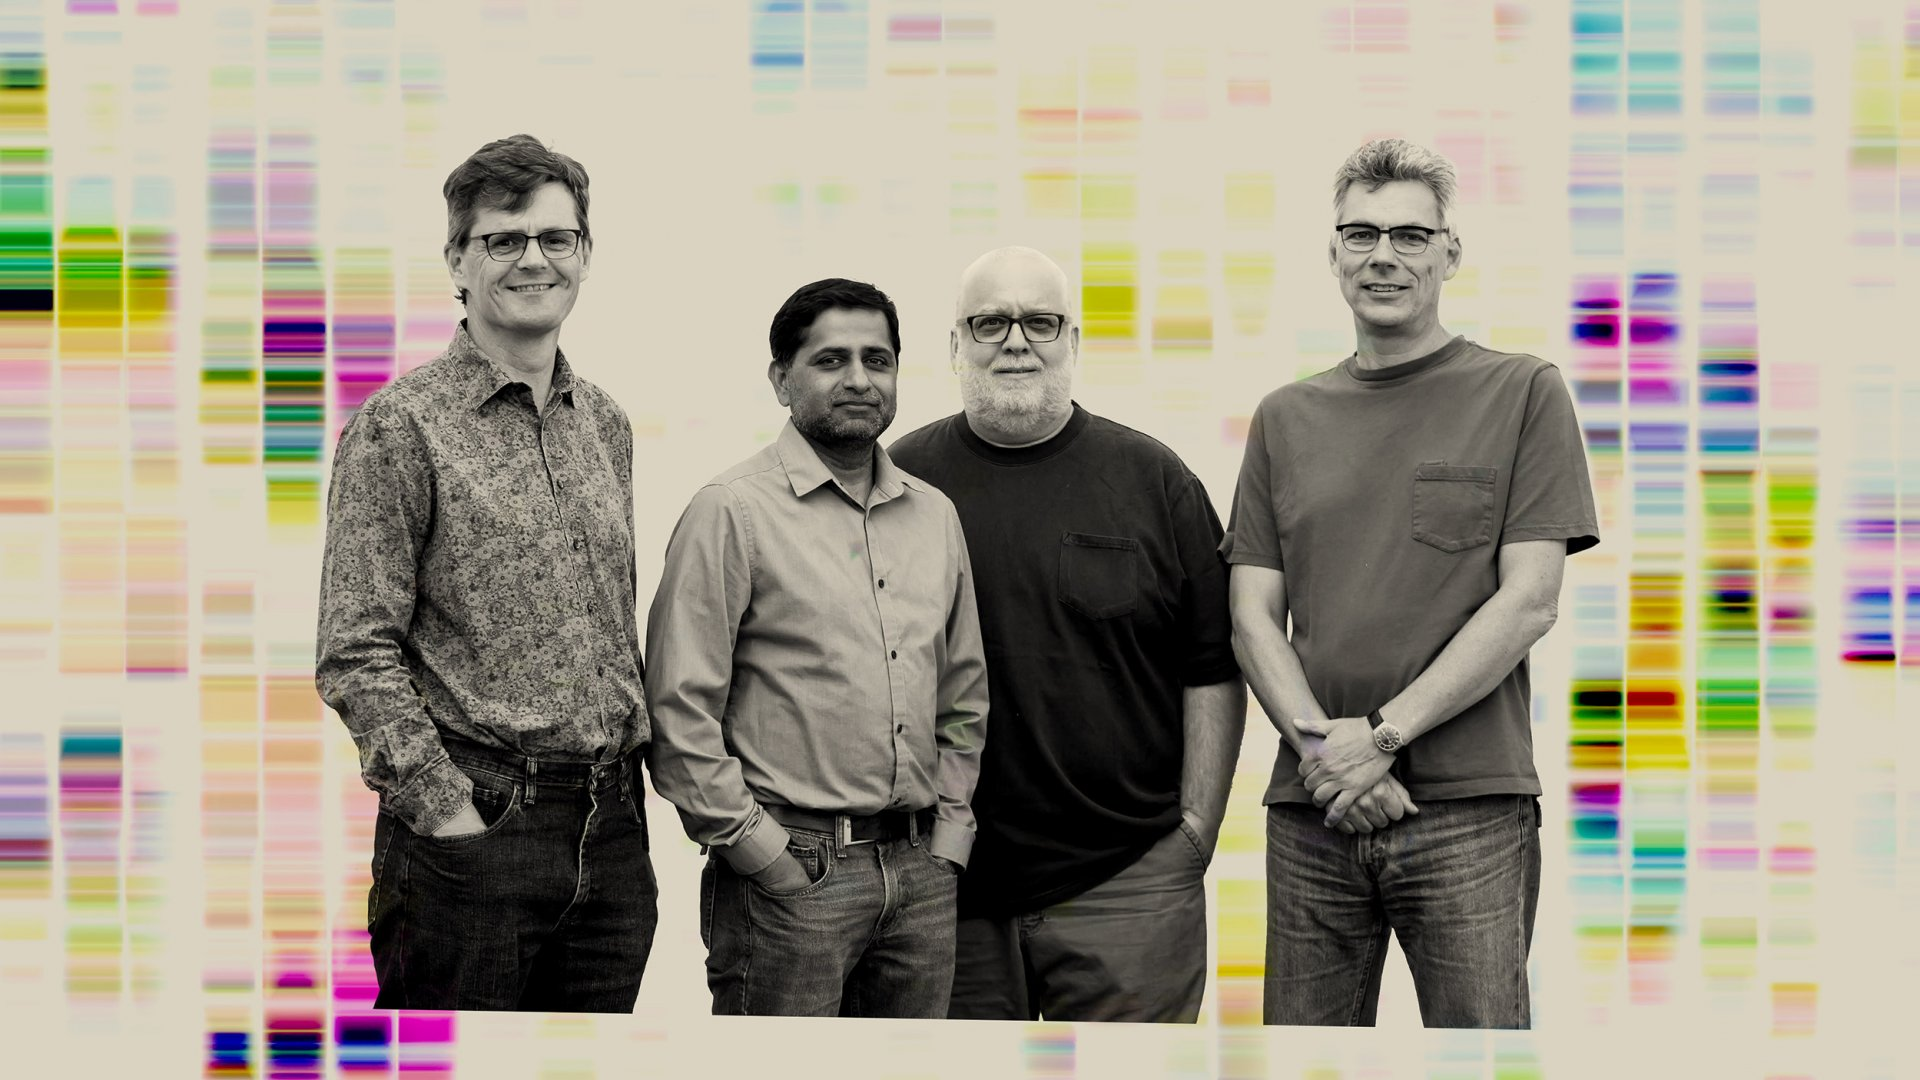 Left to right: Jeremy Minshull, Sridhar Govindarajan, Jon Ness, and Claes Gustafsson